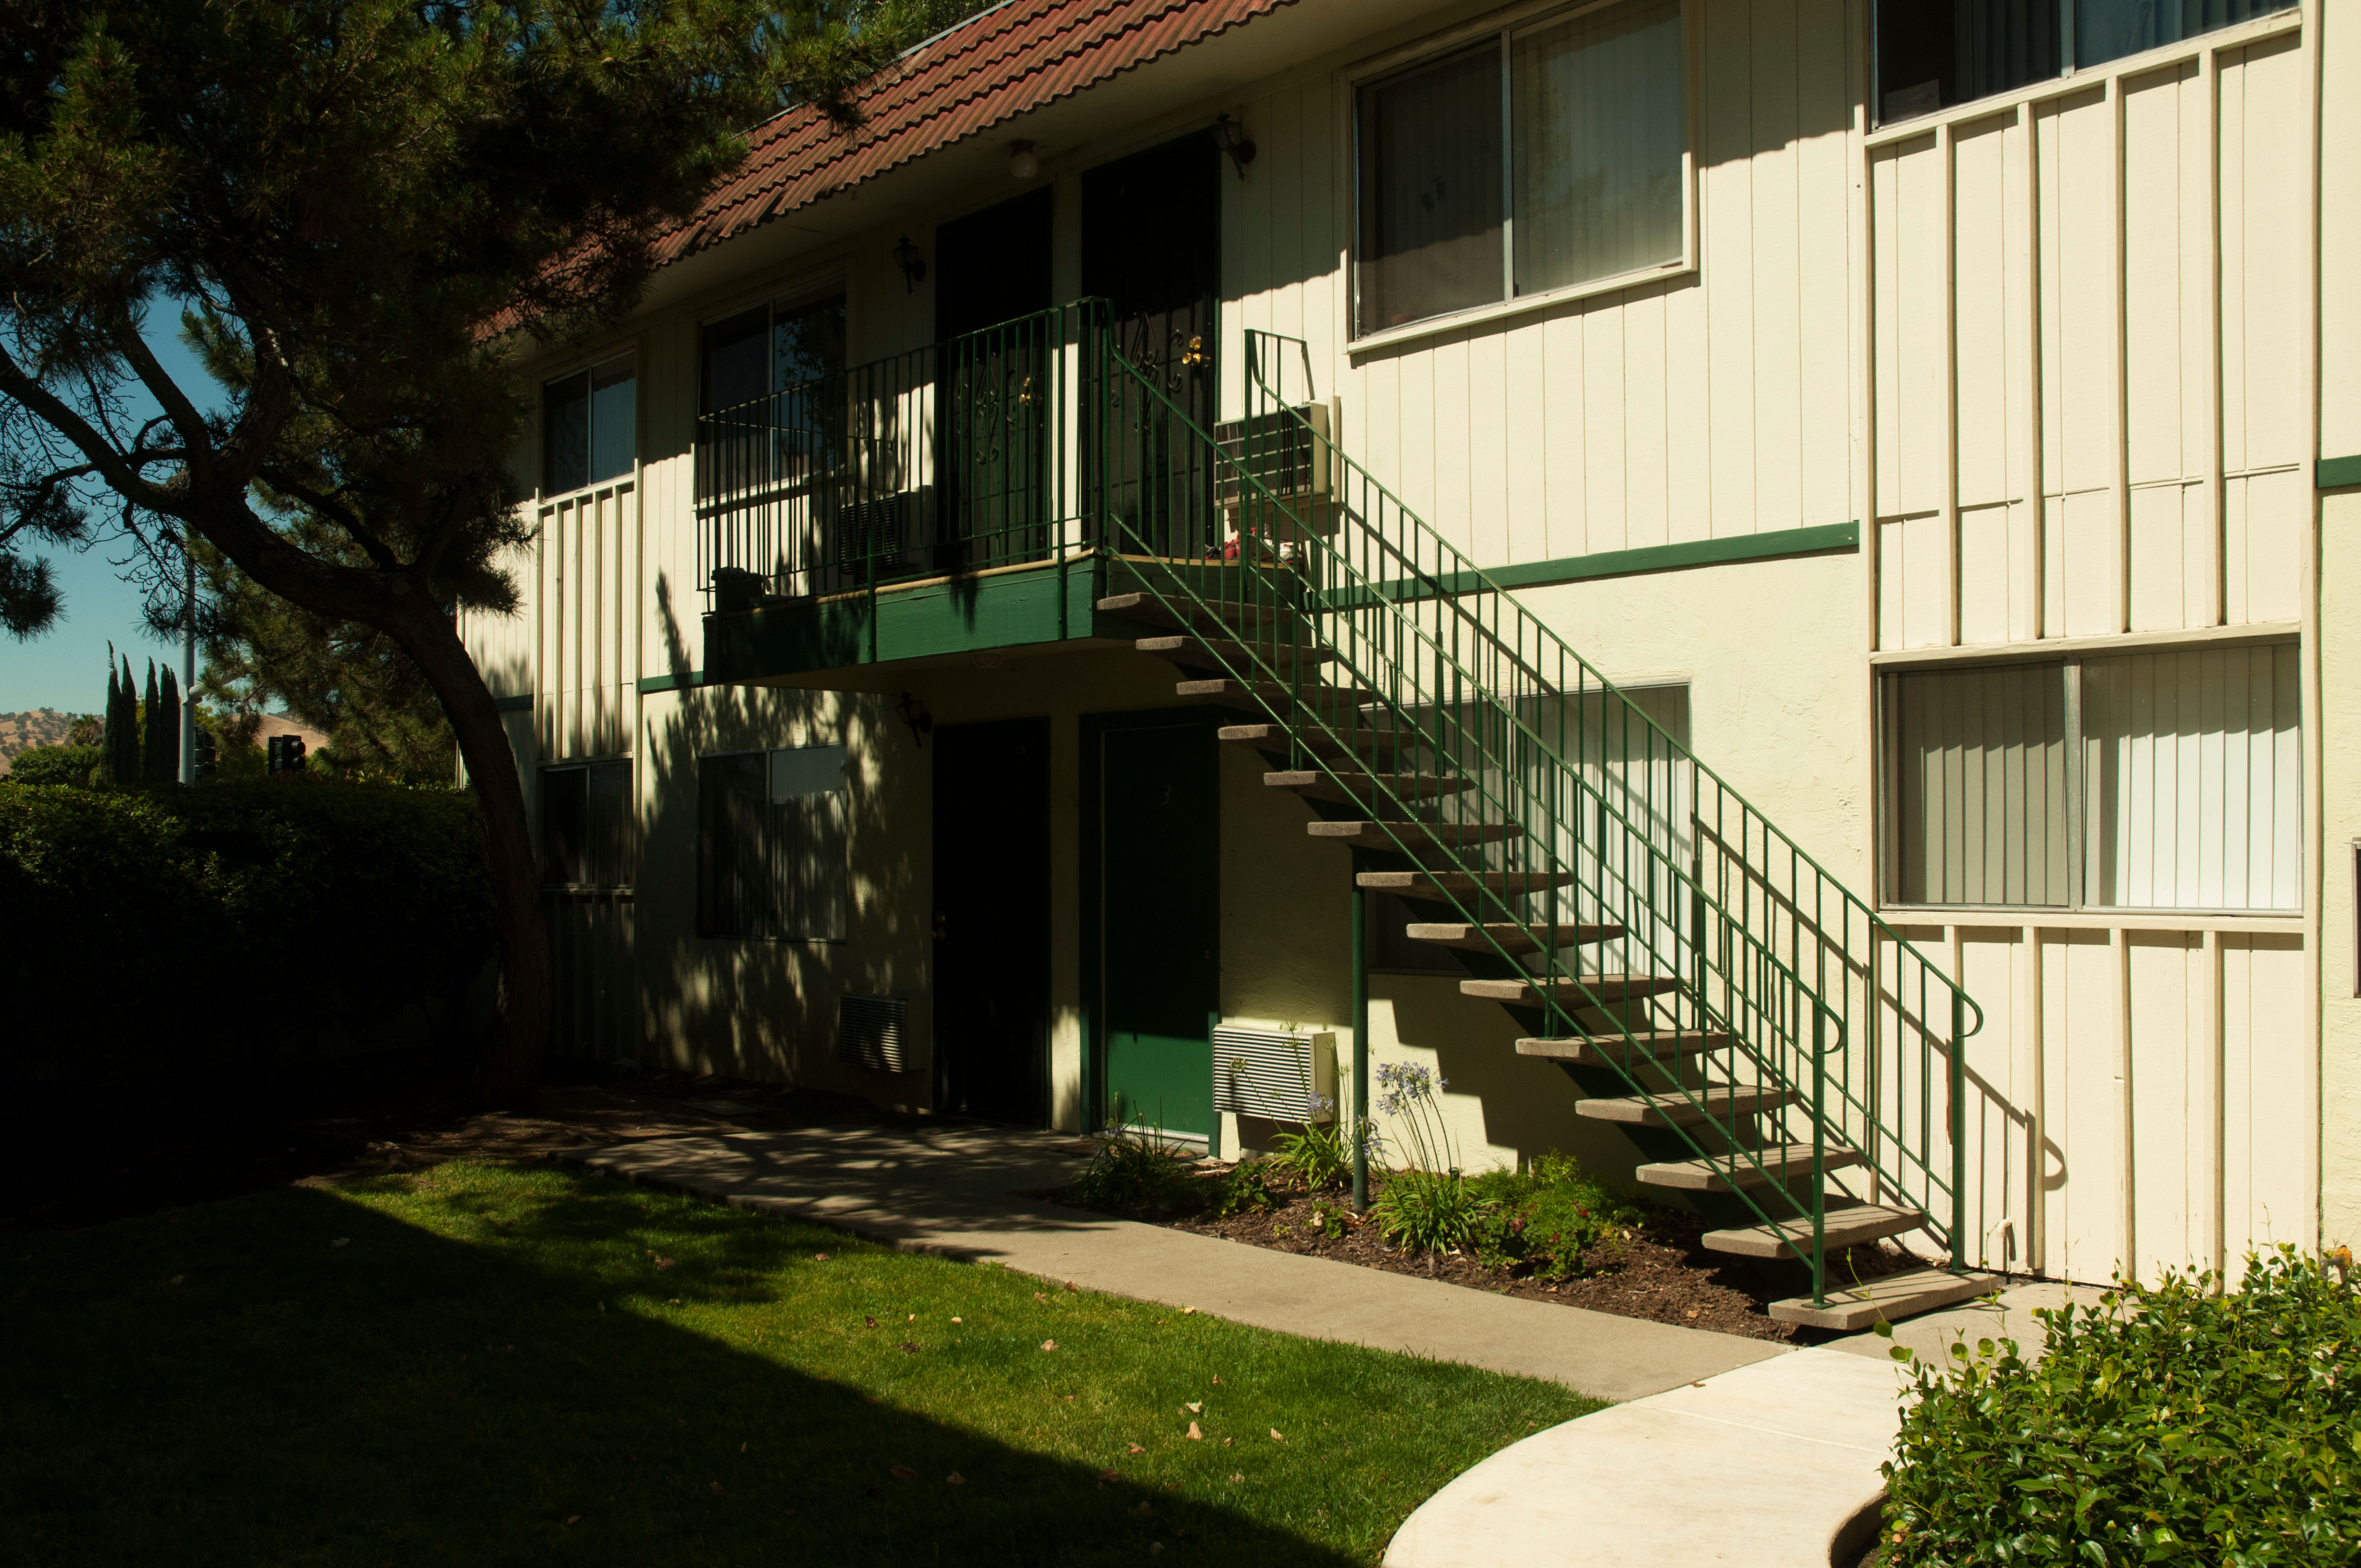 Our apartments in Antioch, California